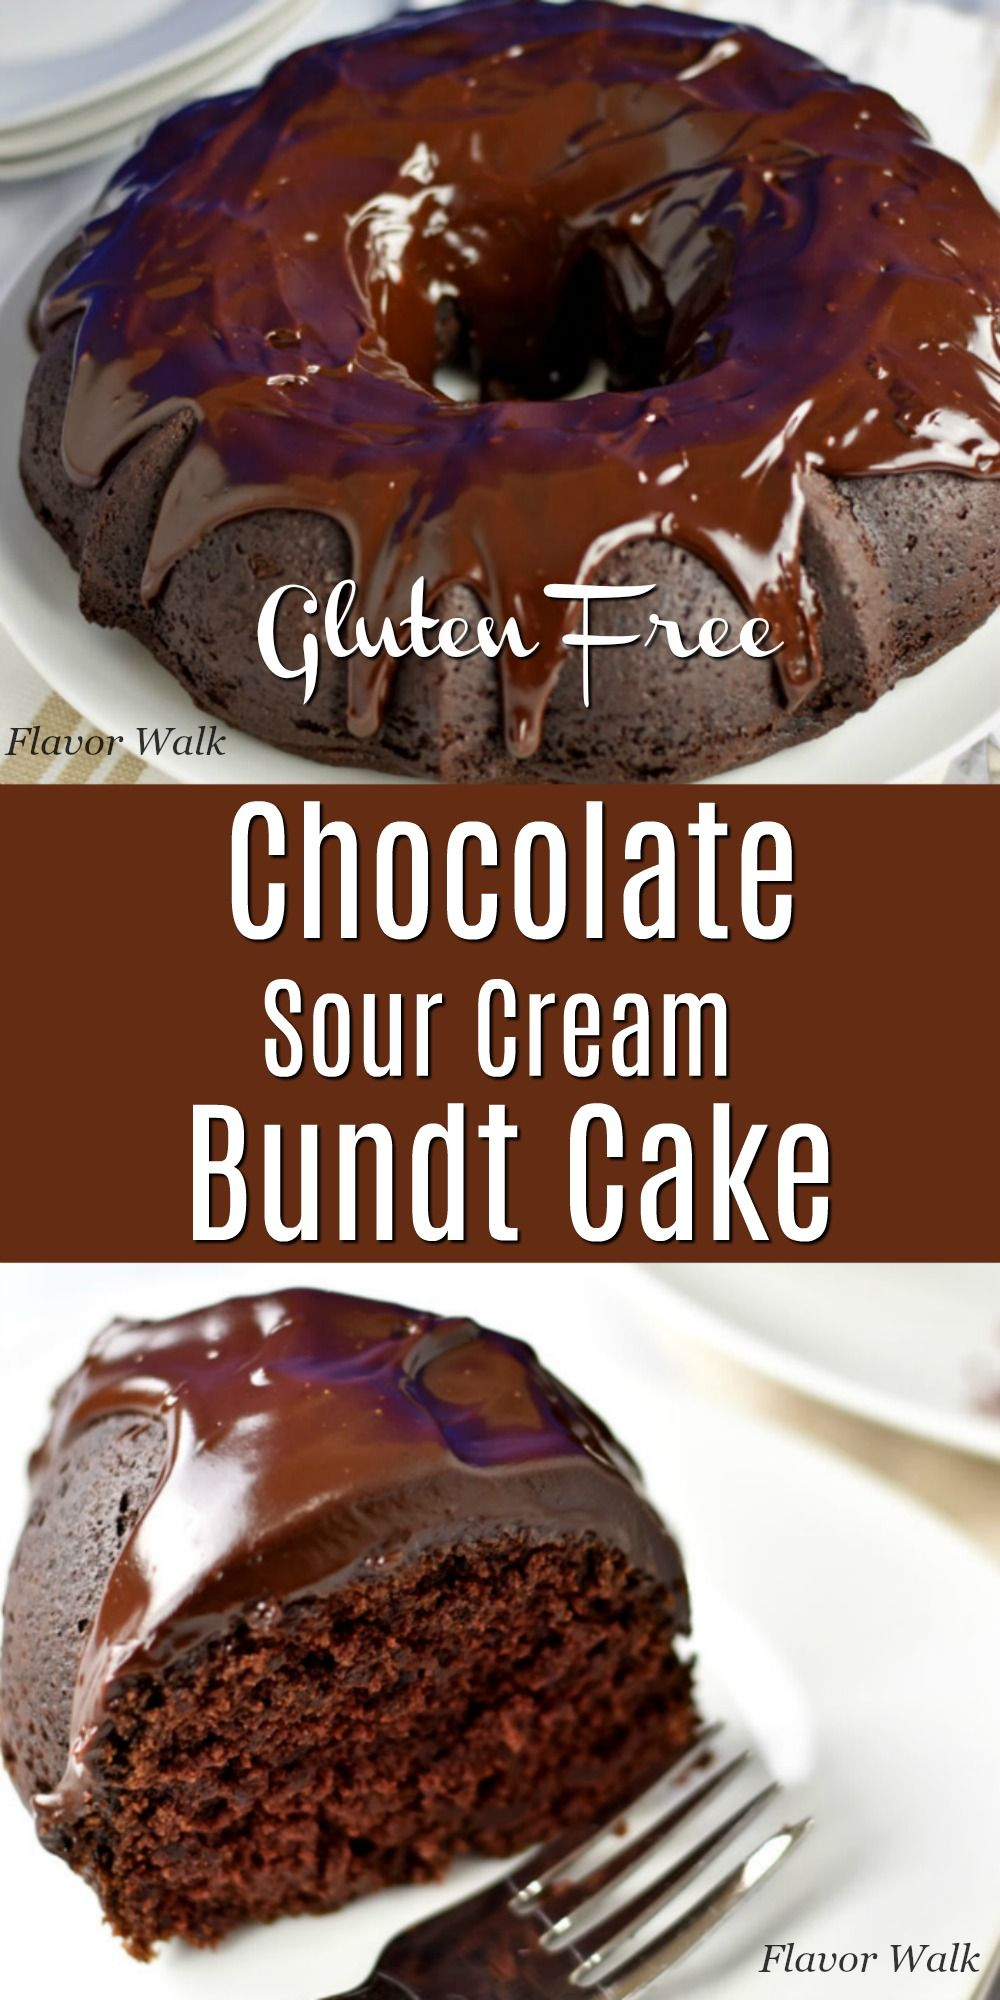 Gluten Free Chocolate Sour Cream Bundt Cake In 2020 Gluten Free Chocolate Cake Recipe Gluten Free Chocolate Sour Cream Recipes